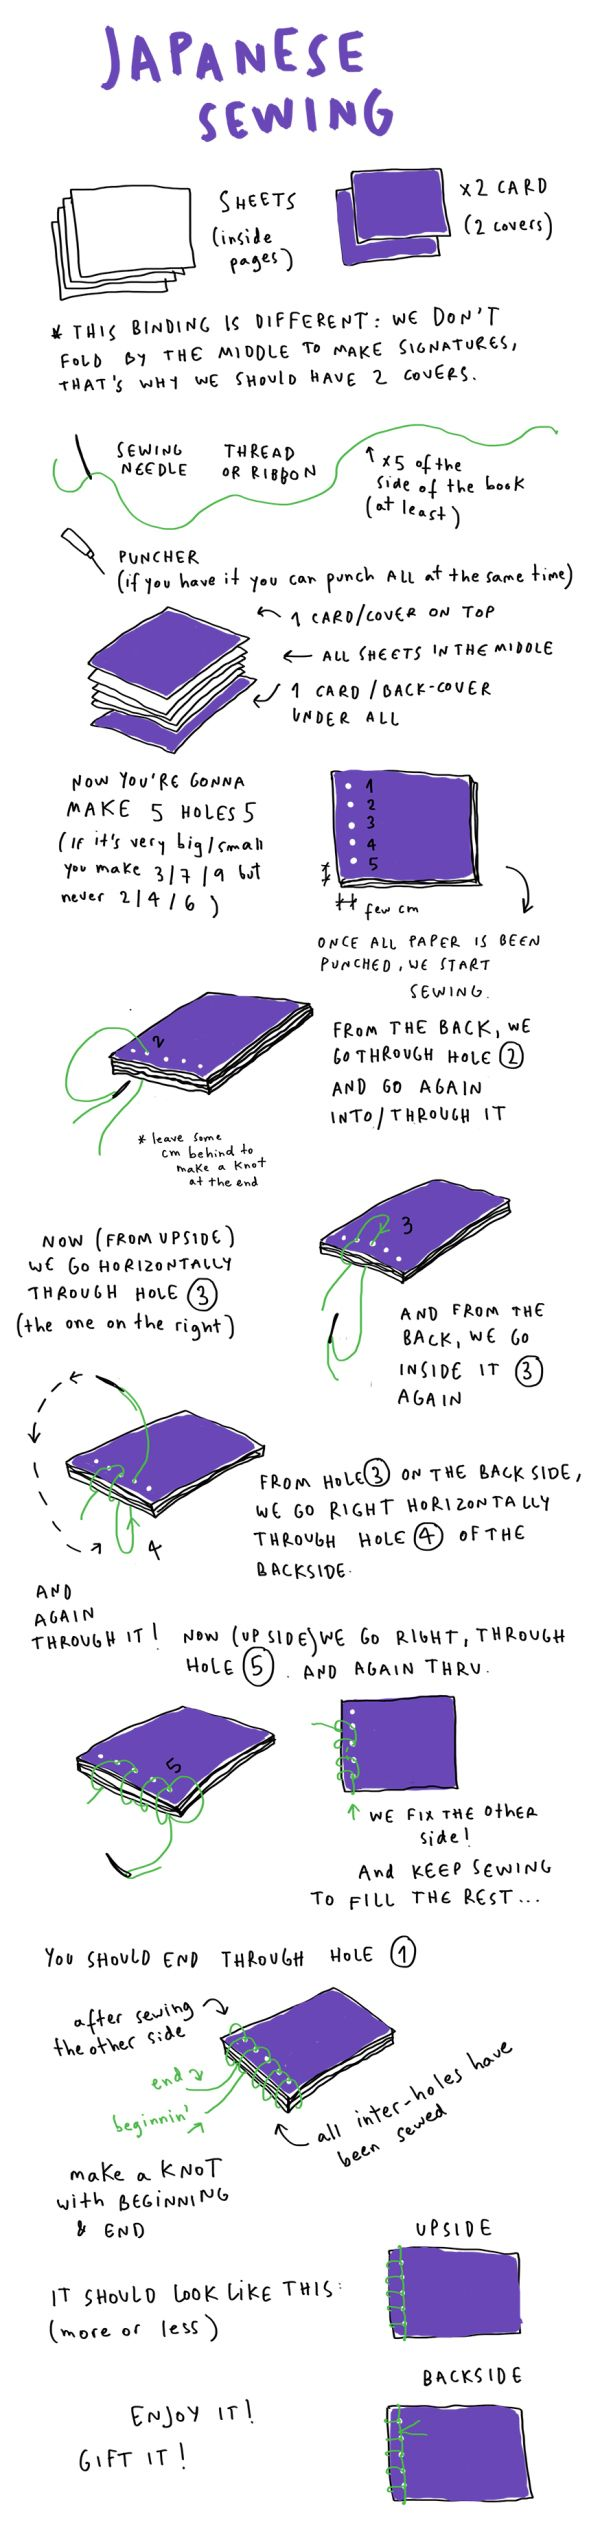 How to on Japanese Bookbinding. Easily legible and clear explanation on how to do excel on this binding method.